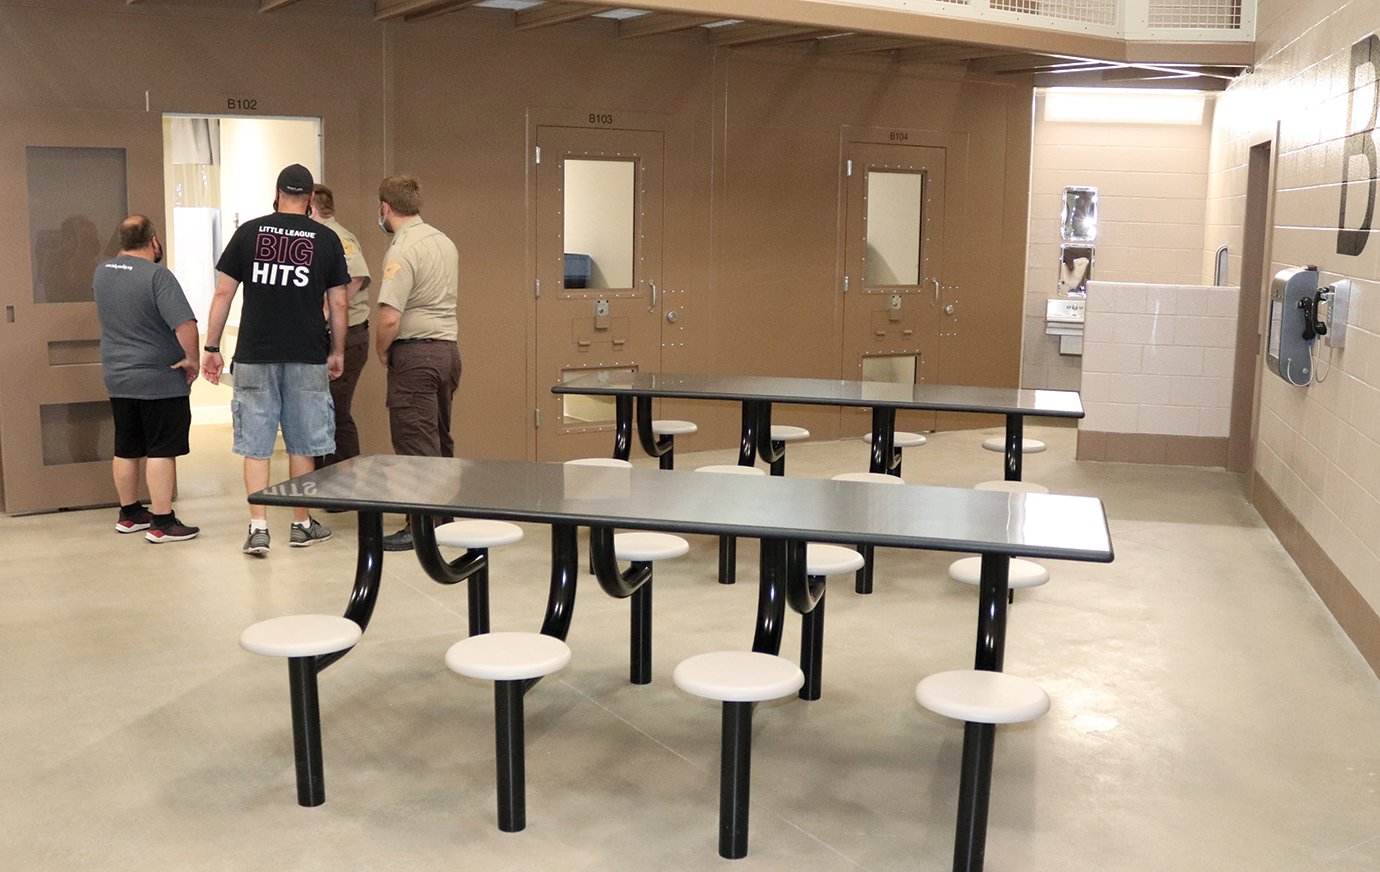 Inmates with extended stays at the newly built Fountain County Jail in Veedersburg will have digital visitation capabilities, dining areas, restroom facilities and telephone services just outside their cells. A total of eight cells capable of holding two inmates are featured in B-Block.